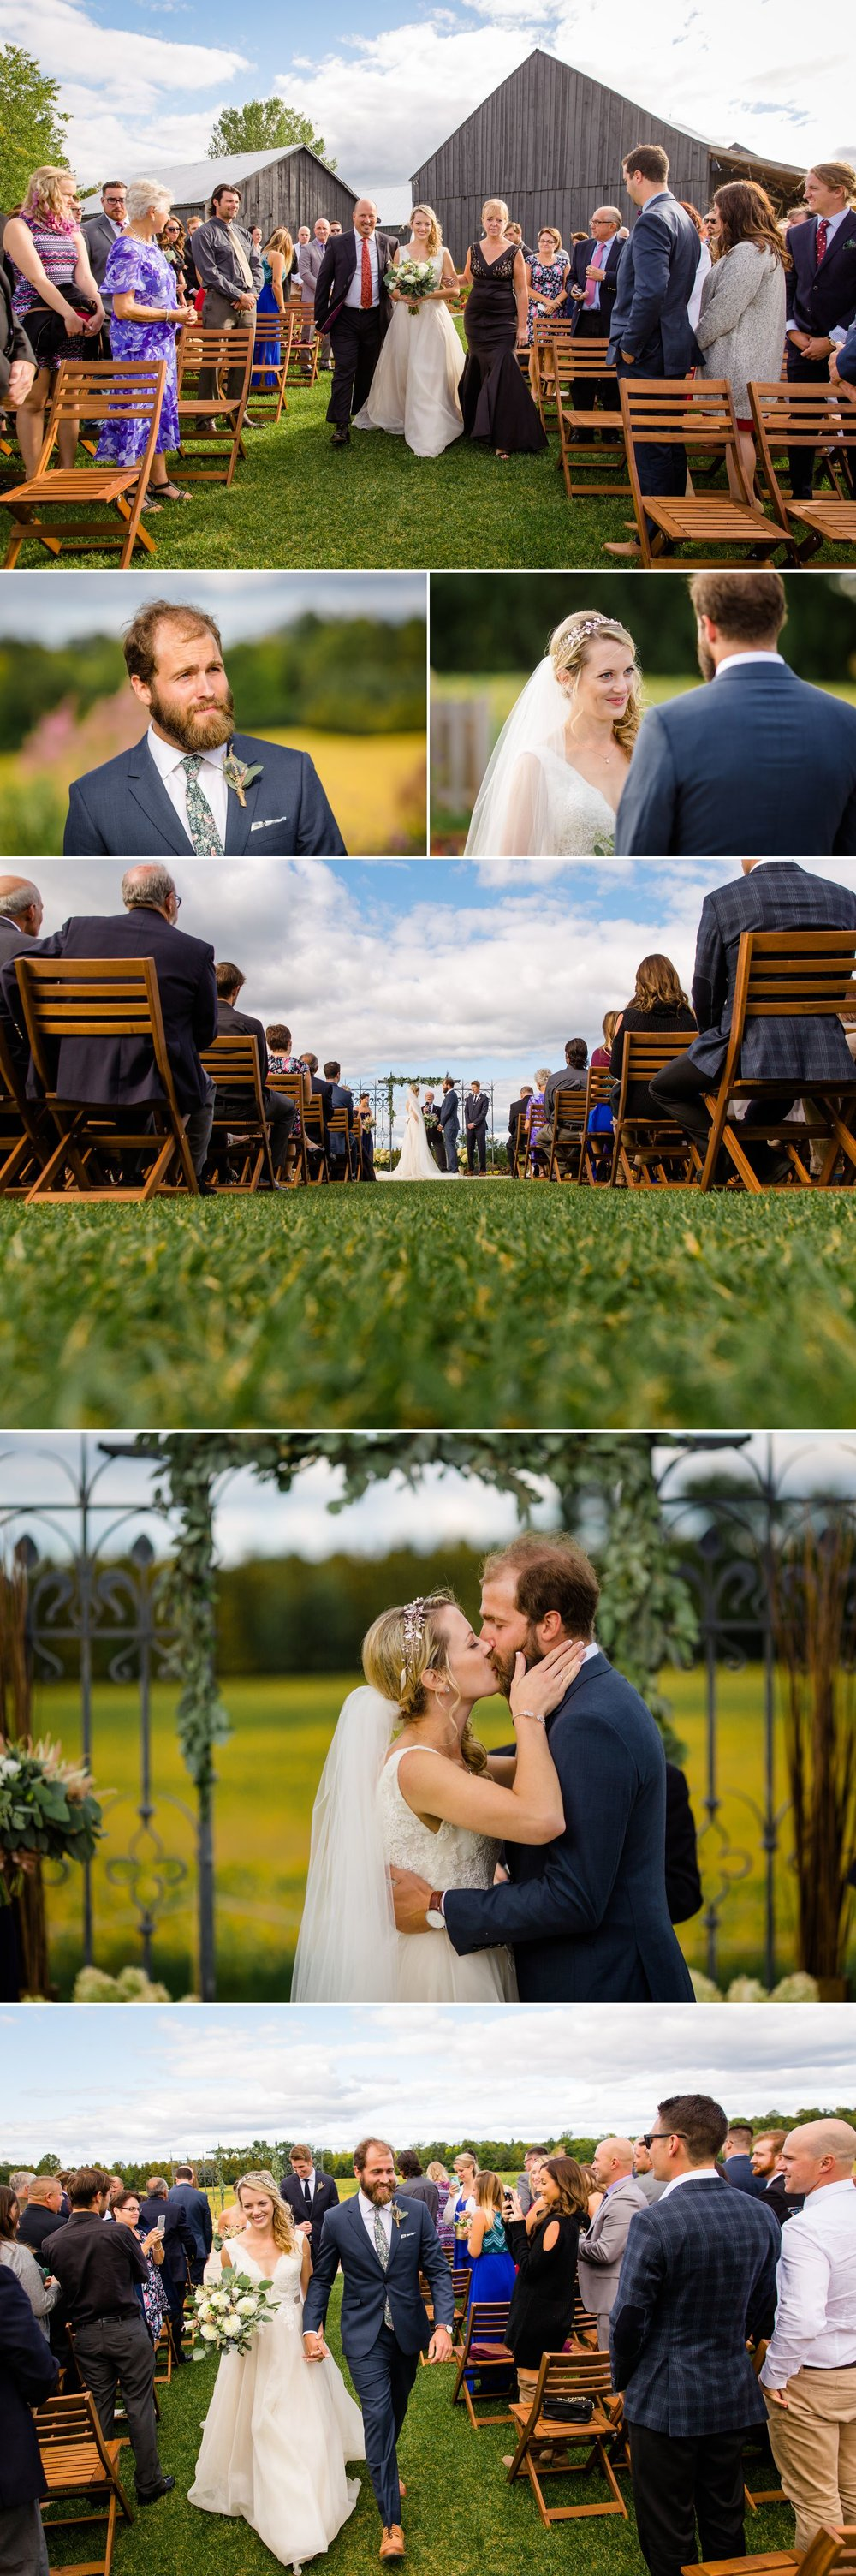 A wedding ceremony outside at Evermore